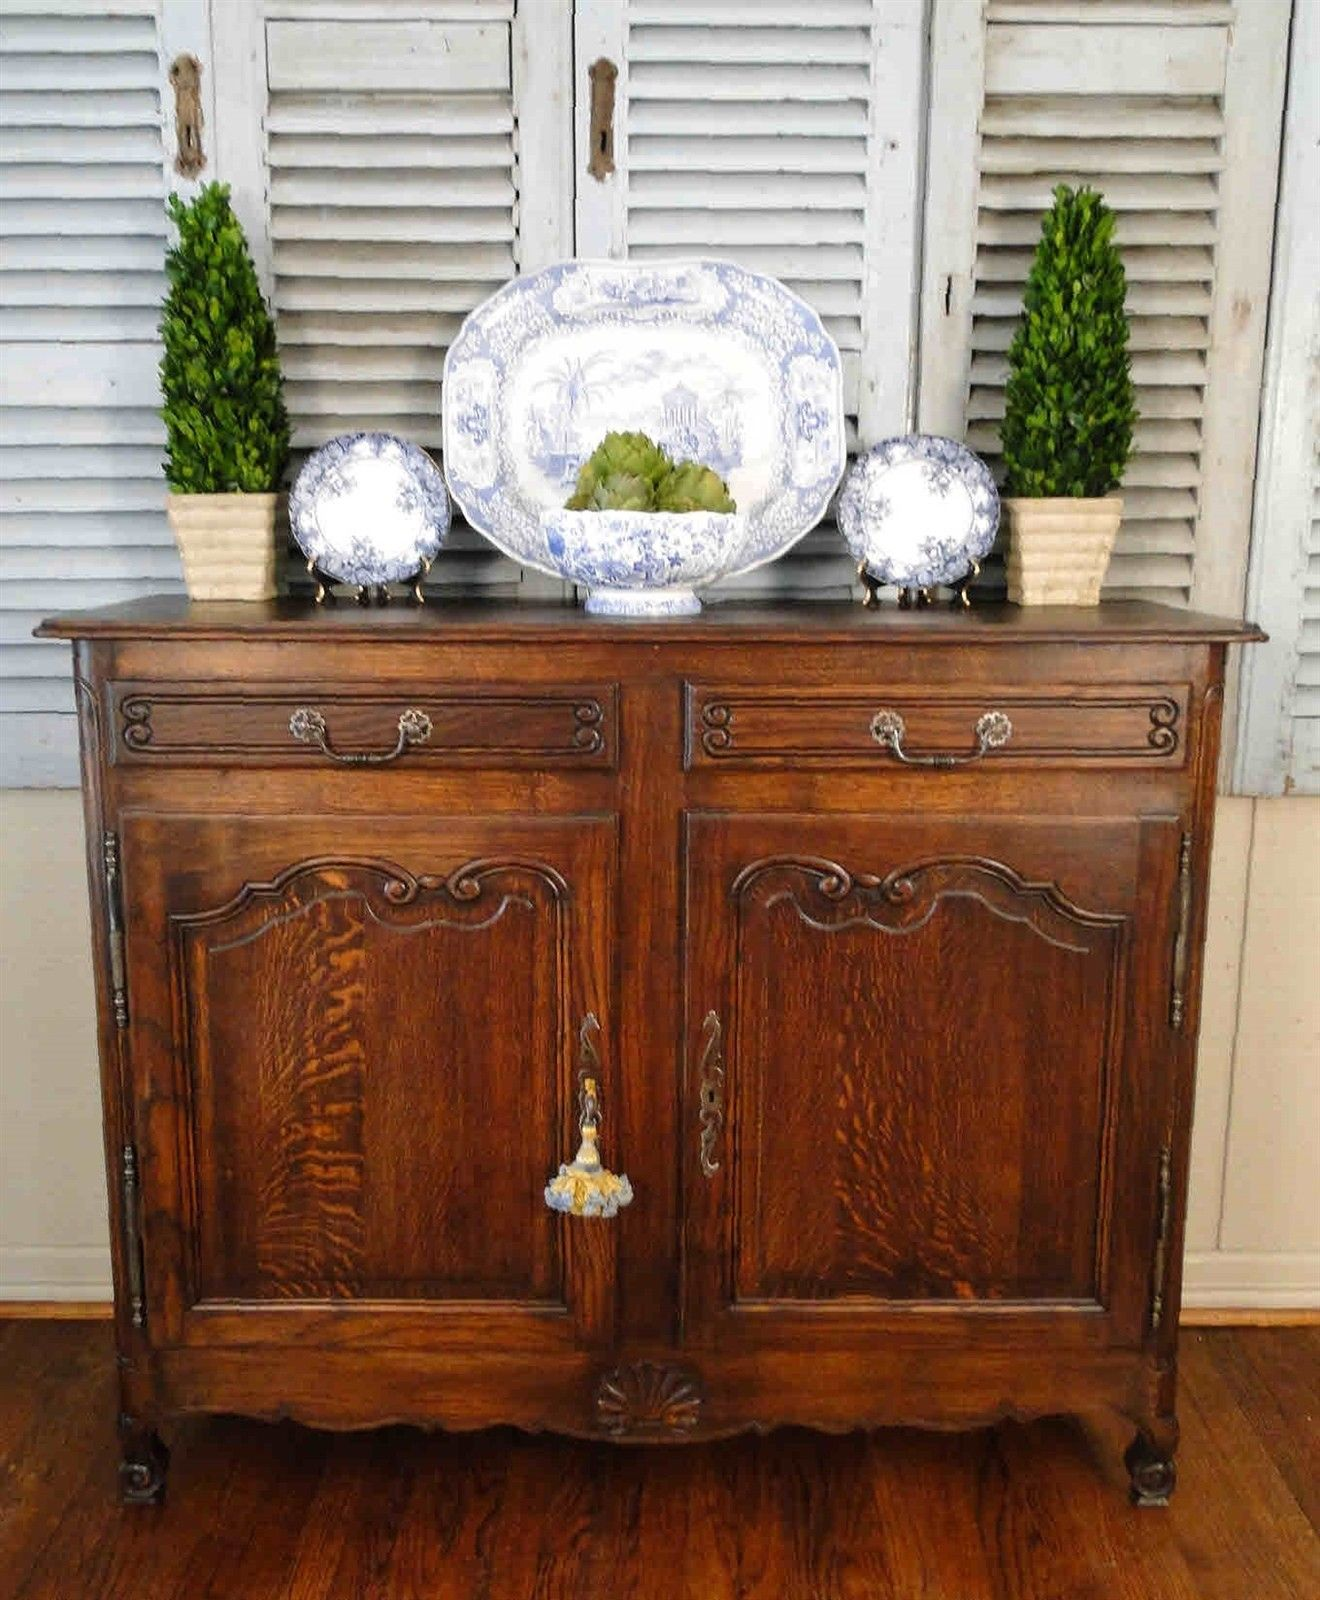 Antique French Country Buffet Sideboard Server Elegant South of France